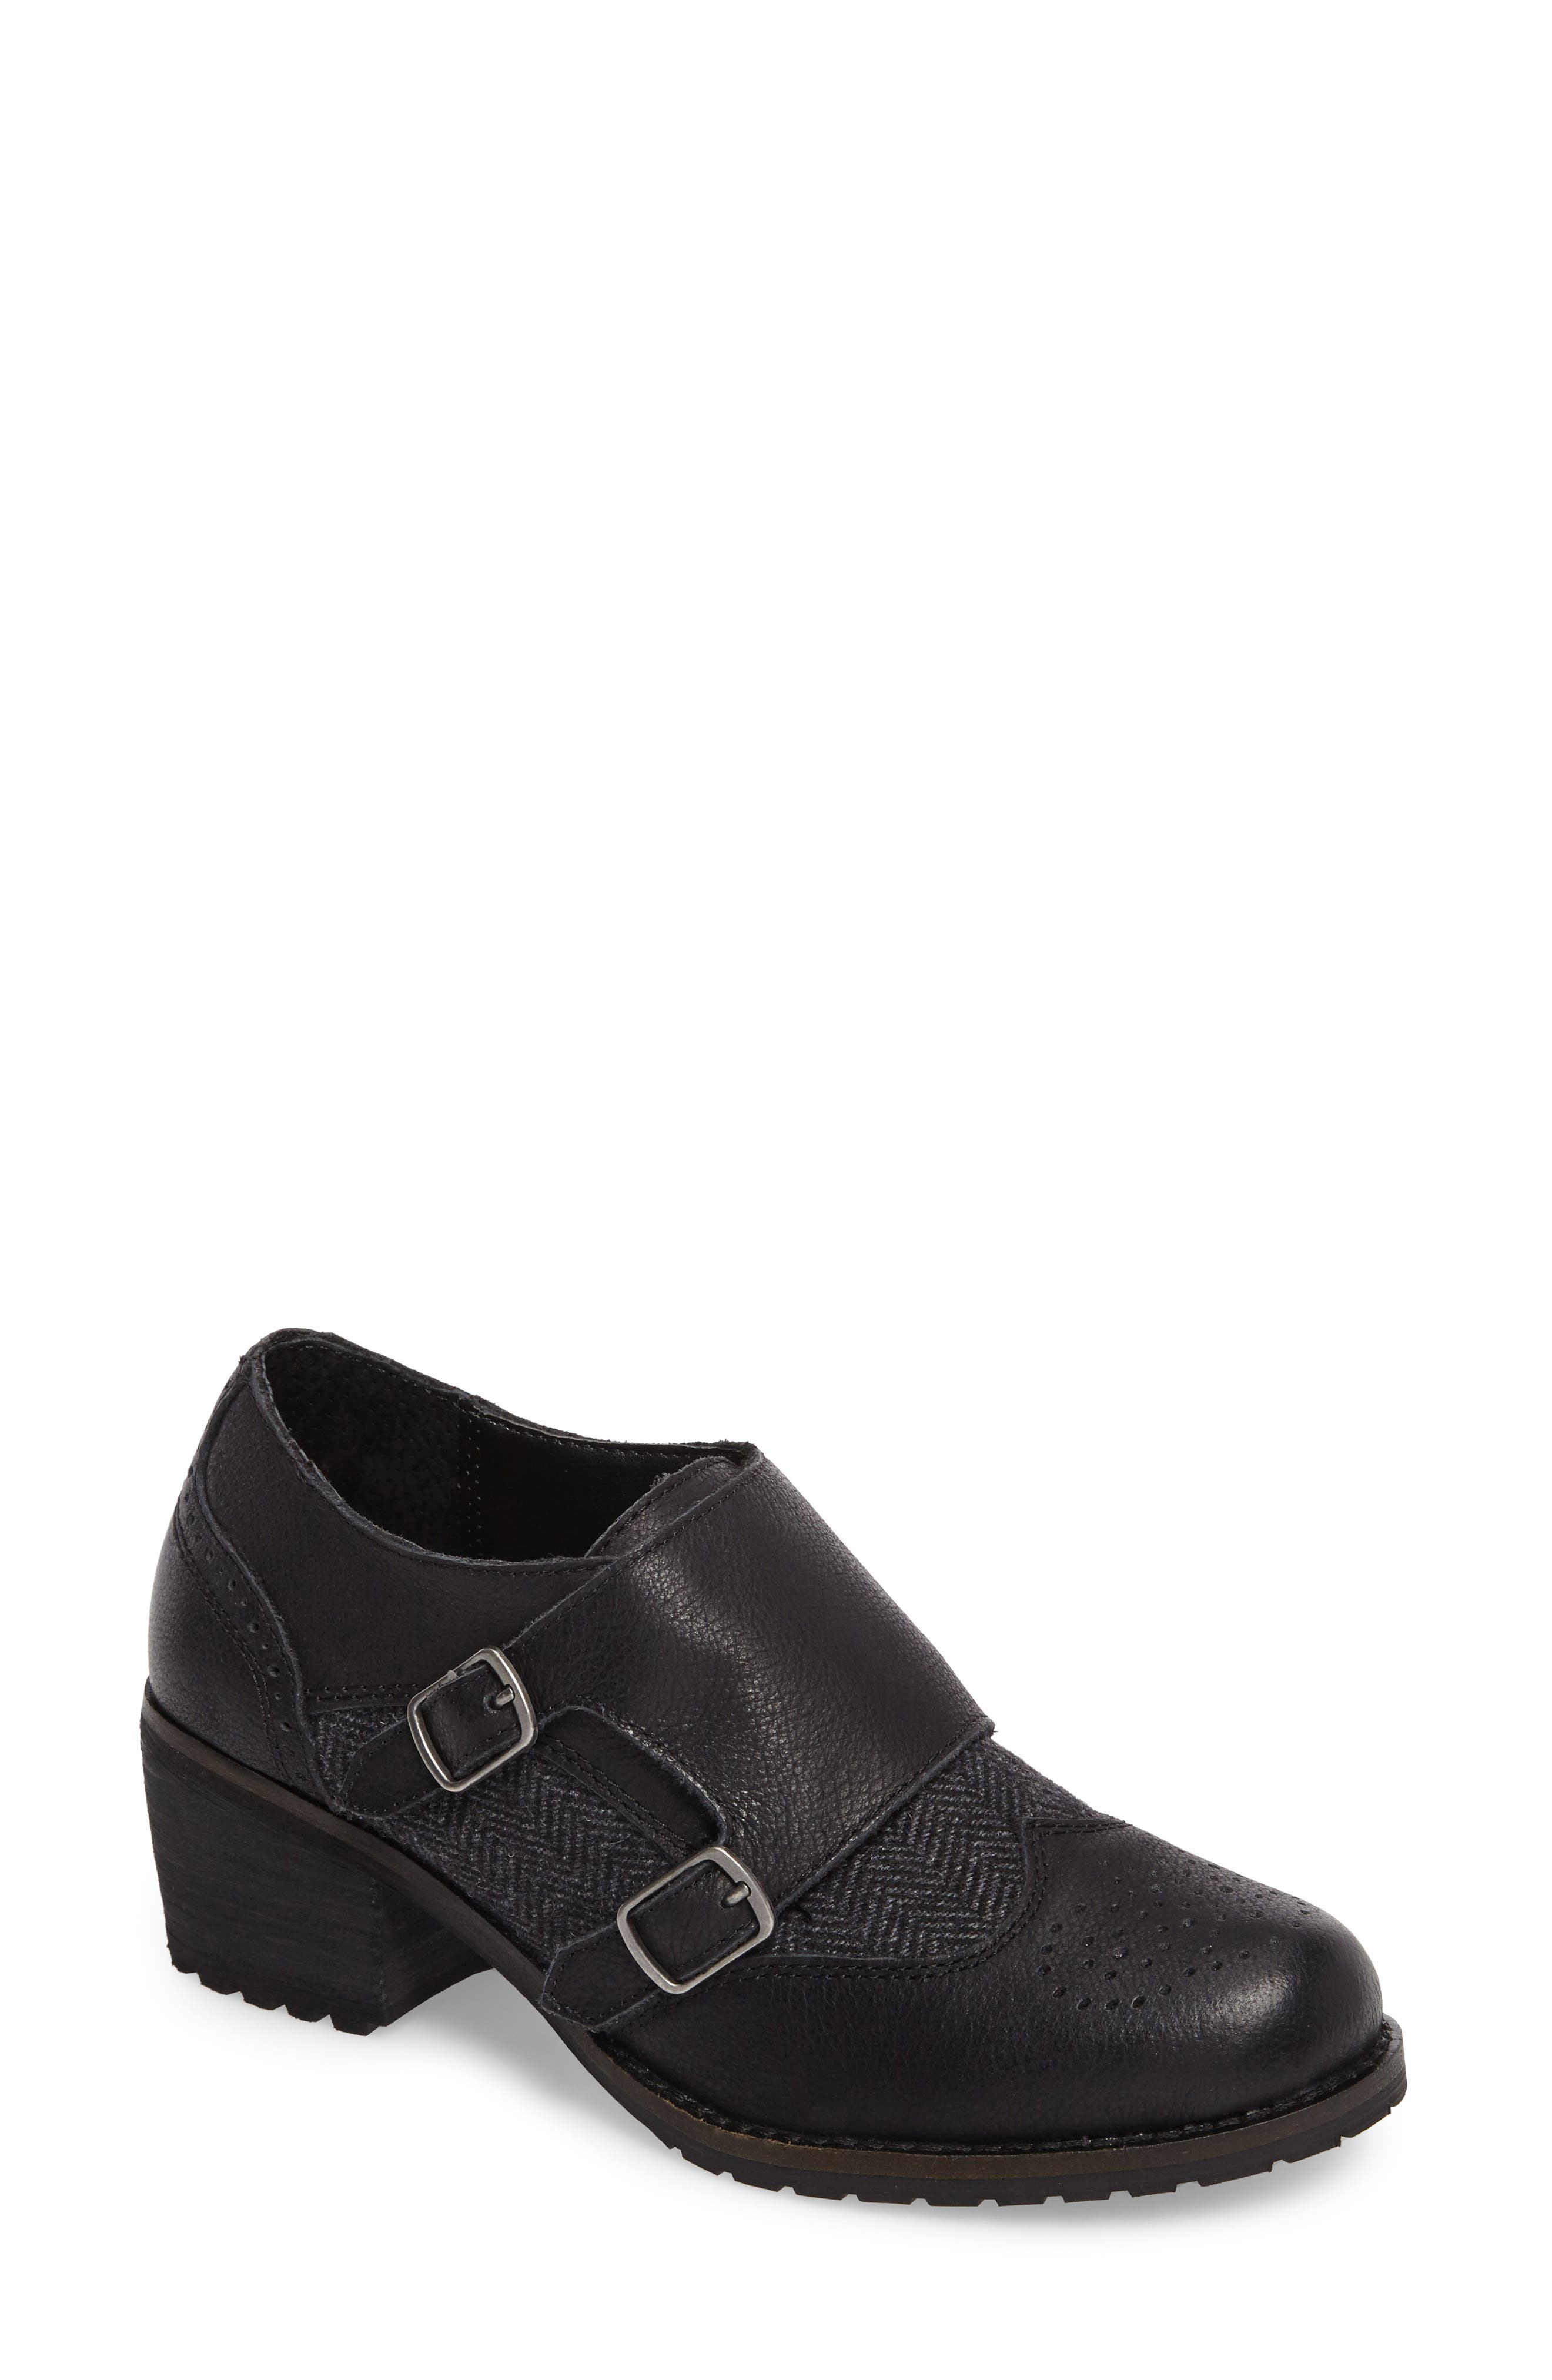 AETREX, Dina Double Monk Strap Ankle Boot, Main thumbnail 1, color, 001